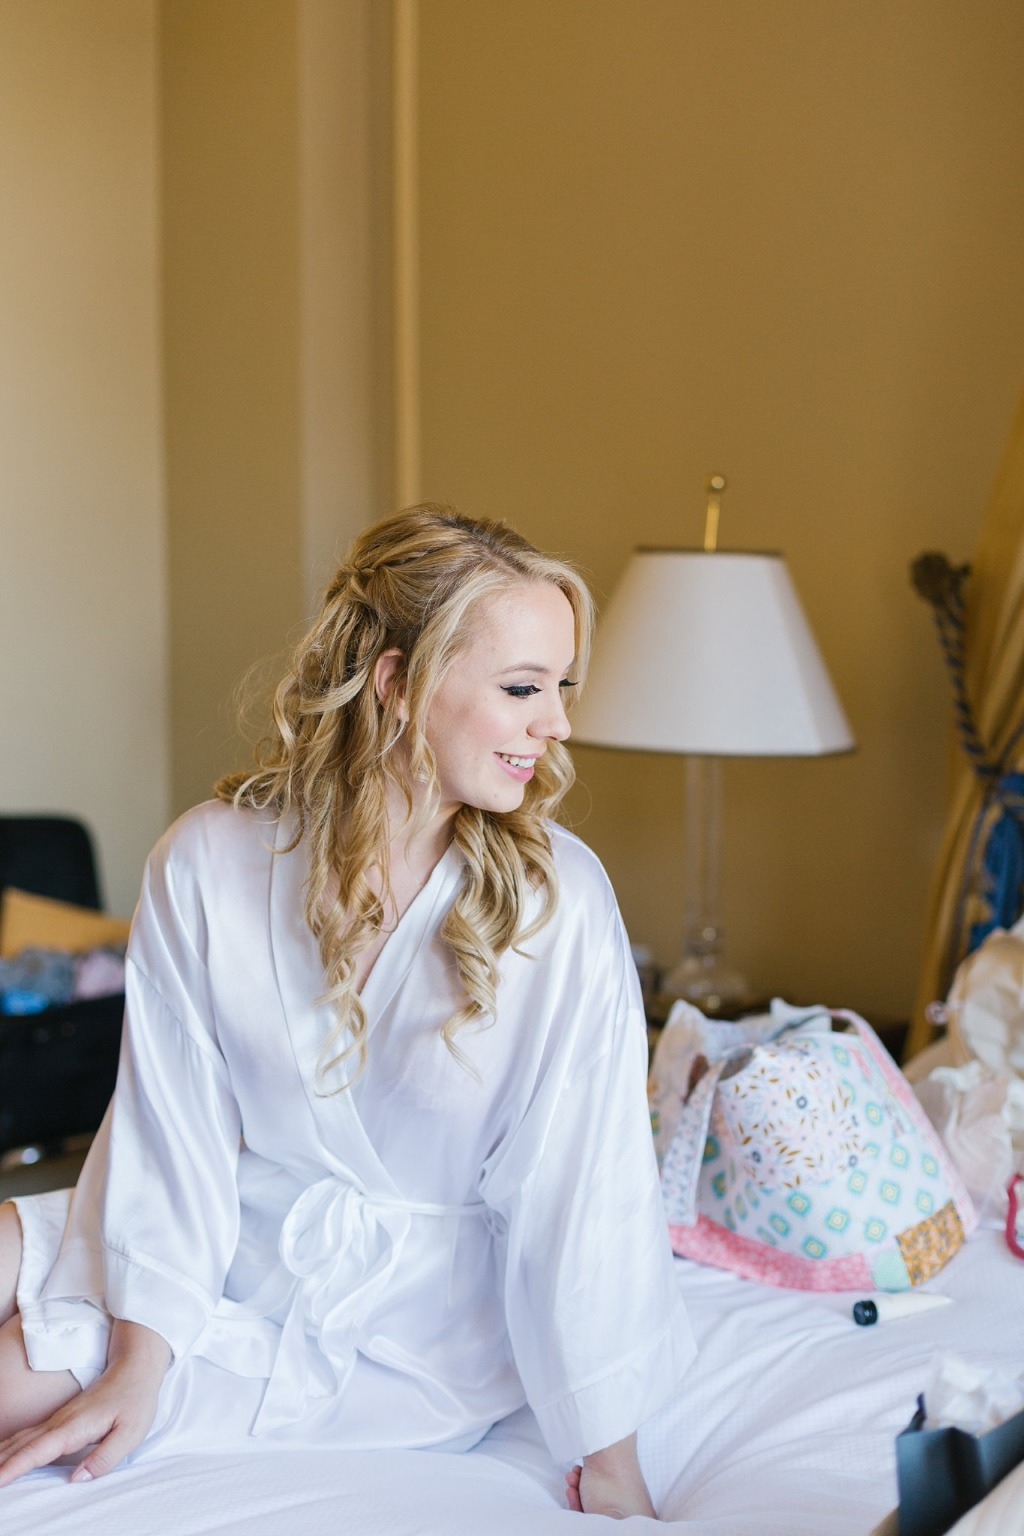 Bride looking gorgeous just before getting dressed! Love the while silk robe too!